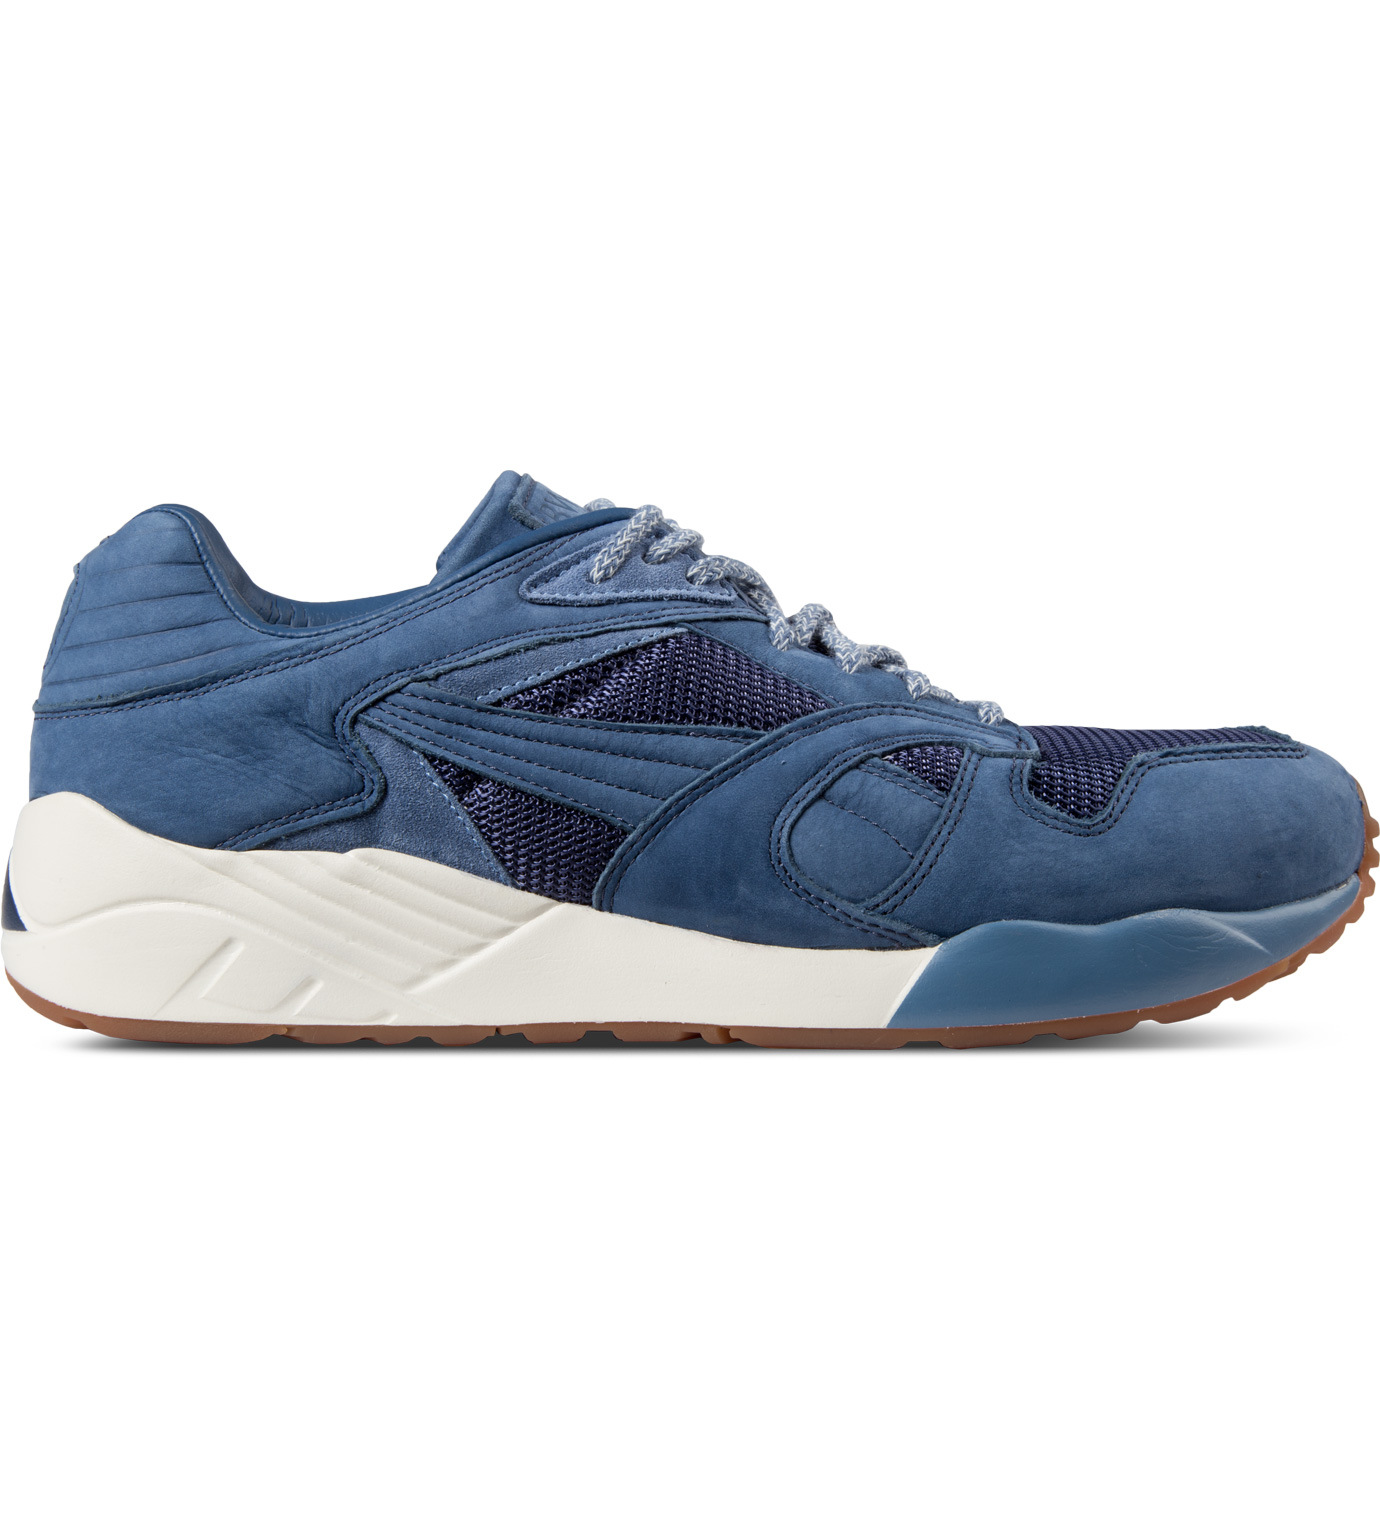 chaussures de séparation 23070 d2357 BWGH x PUMA Dark Denim XS-850 Shoes, Puma